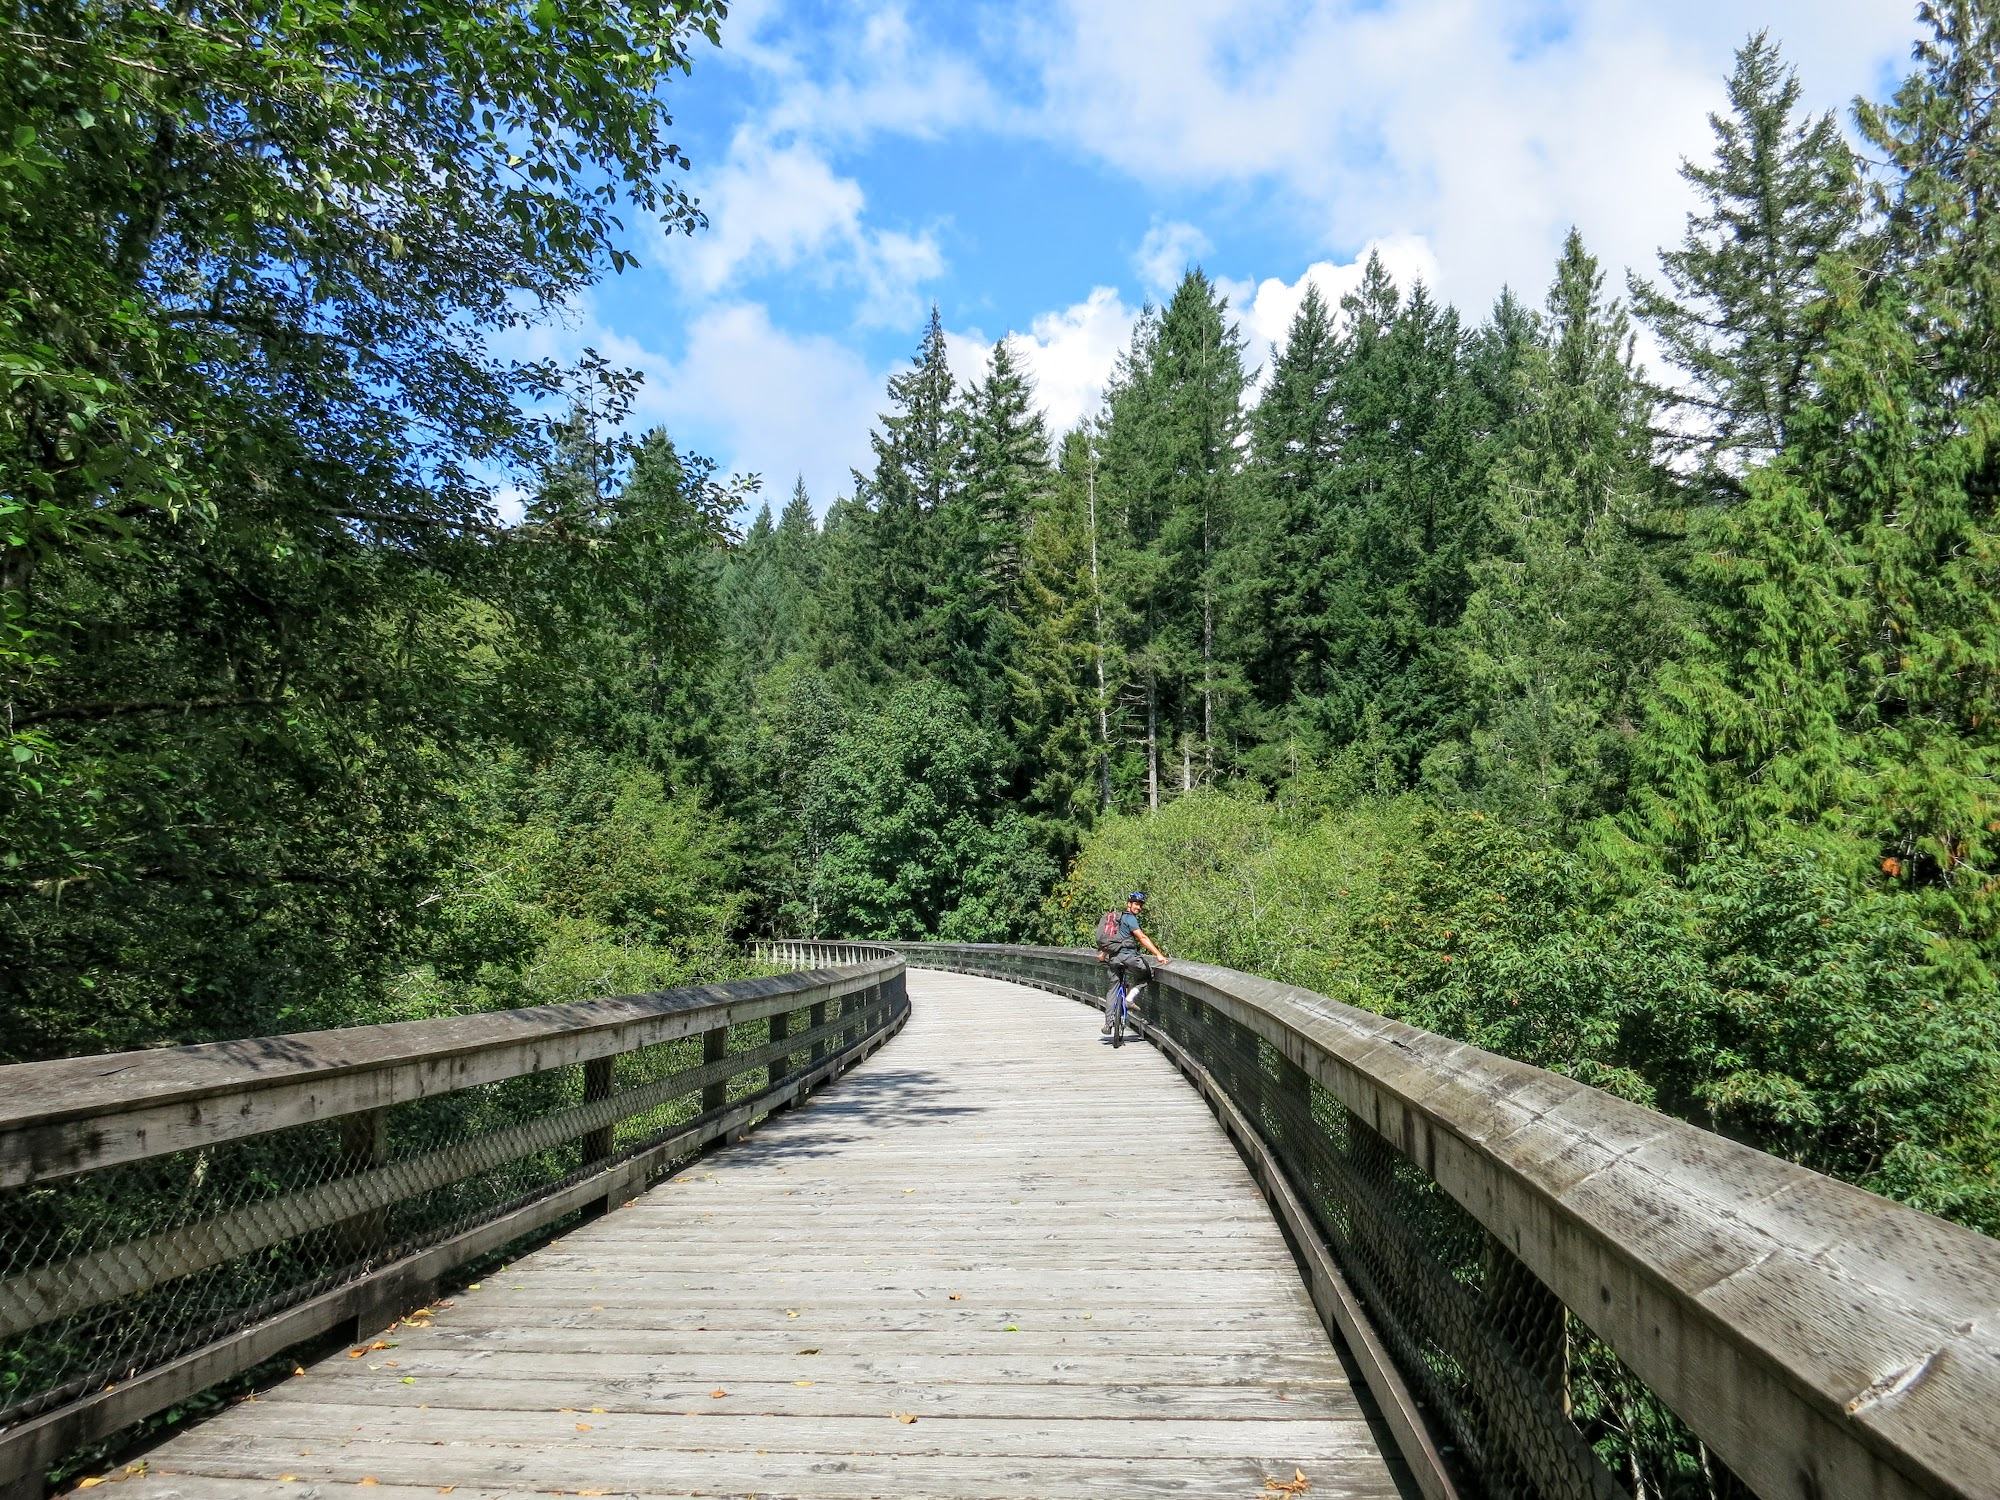 A Day Biking on the Galloping Goose Trail on Vancouver